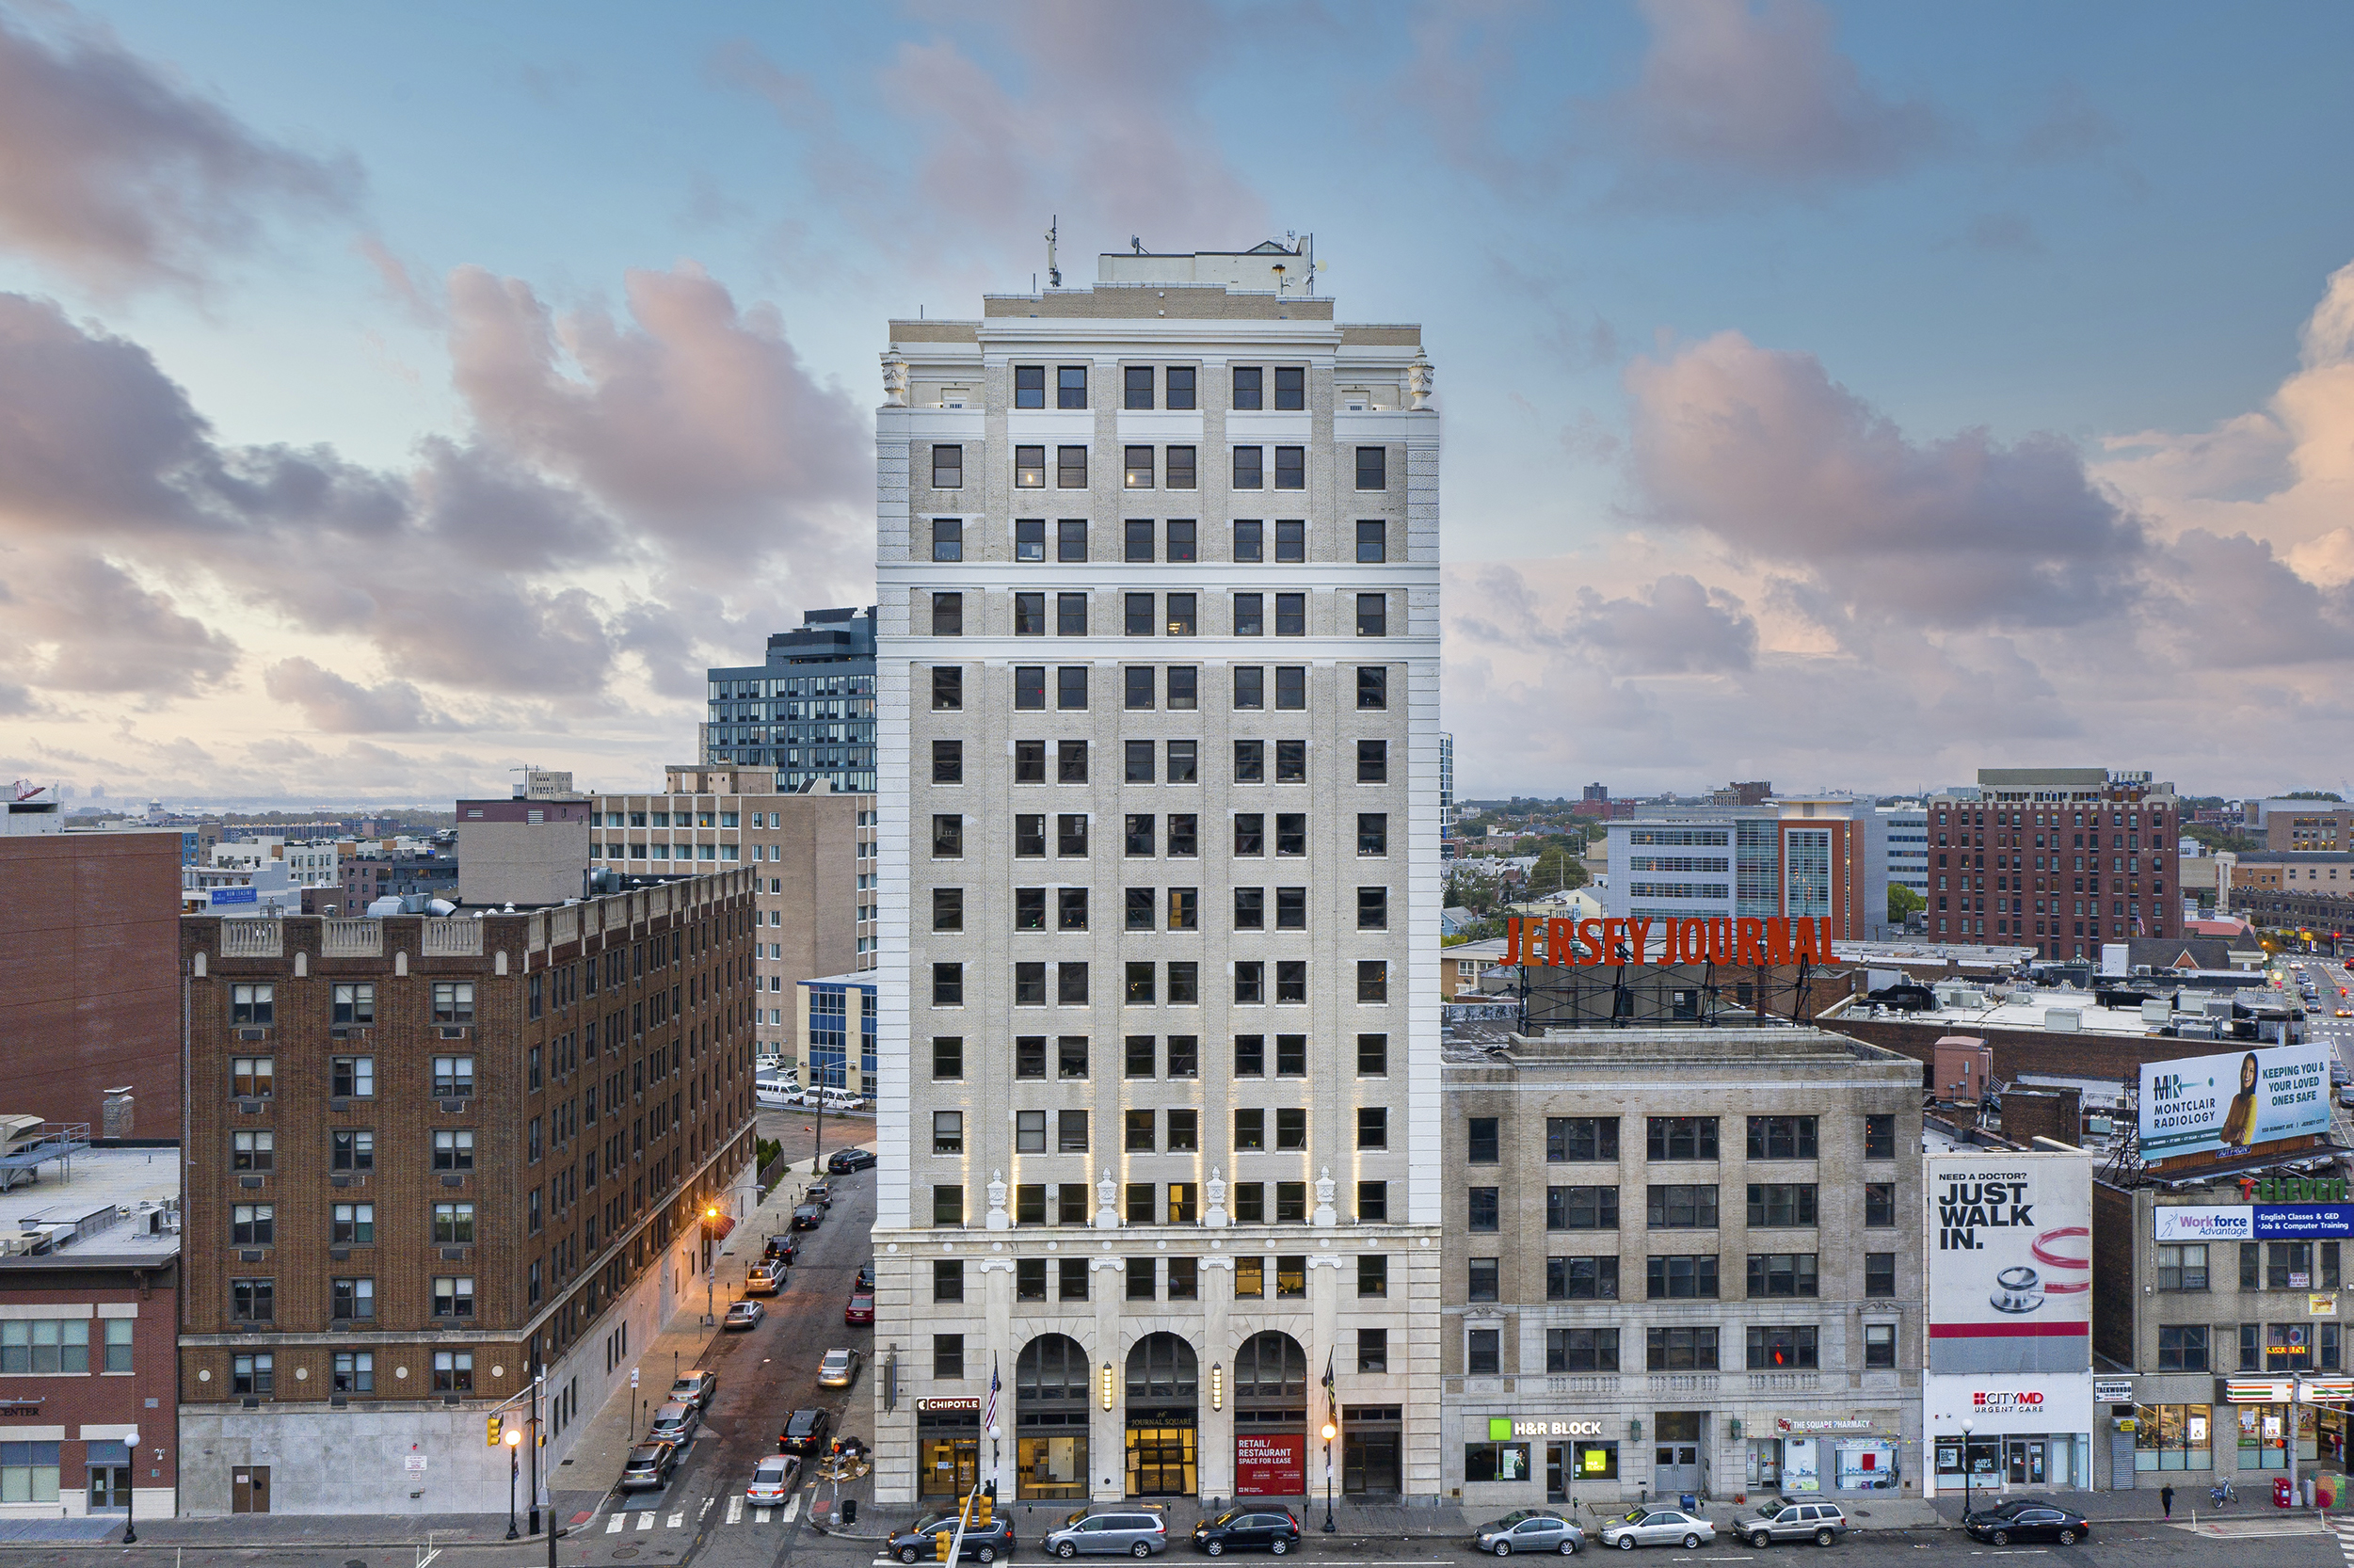 Plan would transform old Jersey Journal building in Jersey City